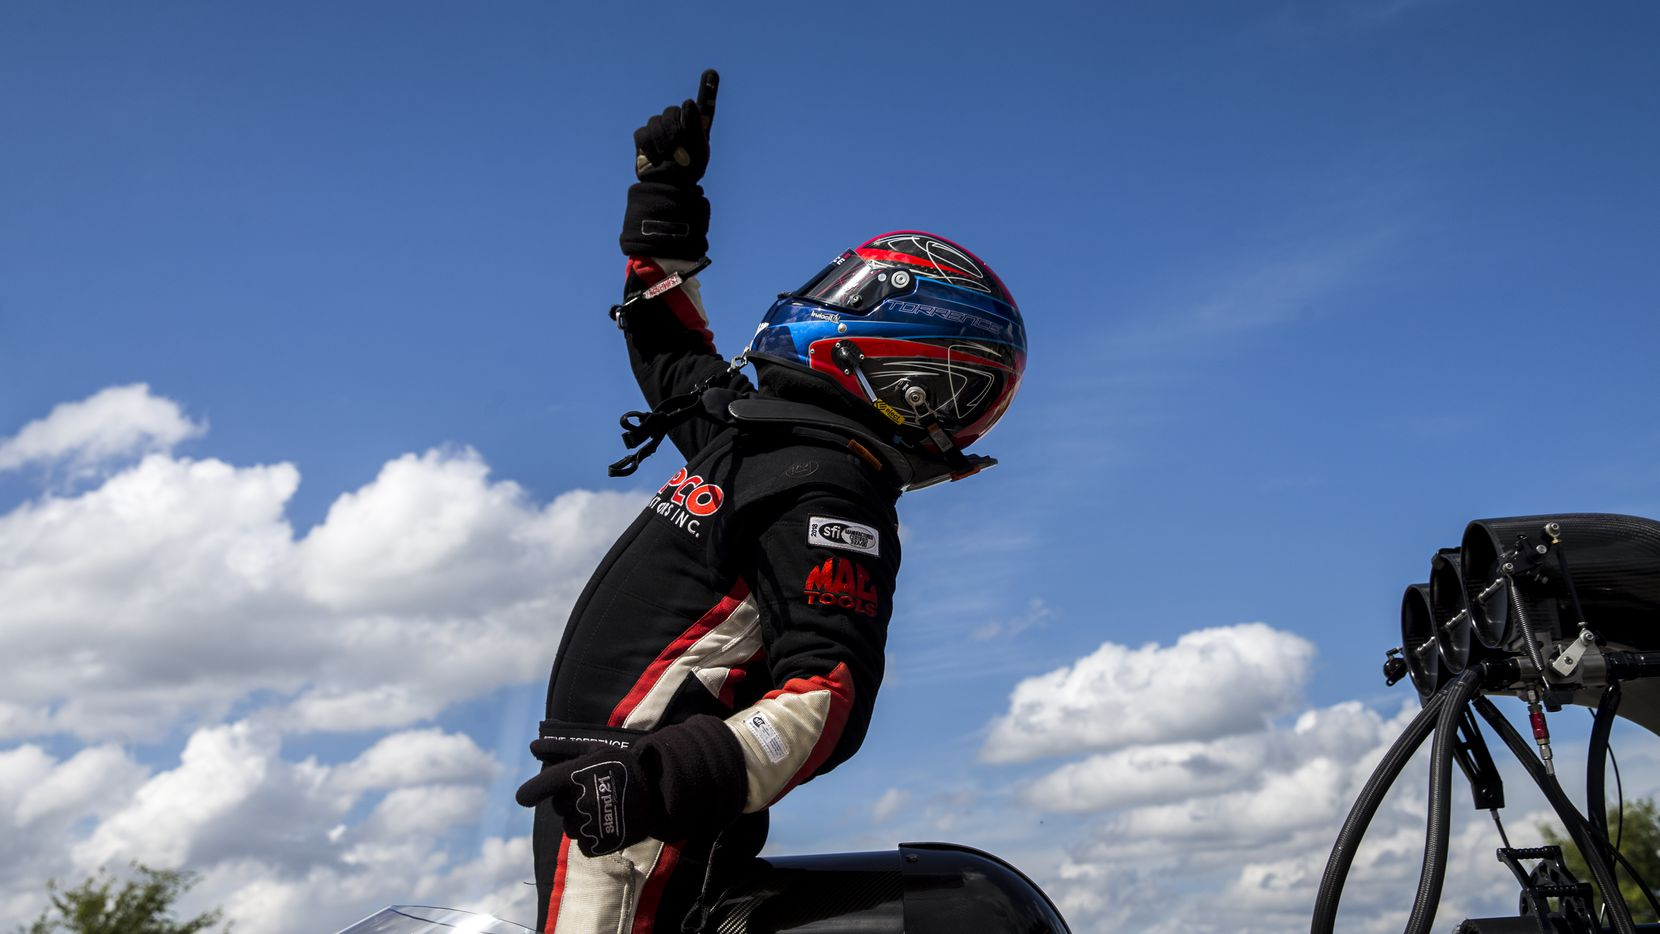 Steve Torrence celebrates after advancing to the final in the top fuel race during the AAA Texas NHRA Fall Nationals at Texas Motorplex in Ennis, Texas on Sunday, October 7, 2018.